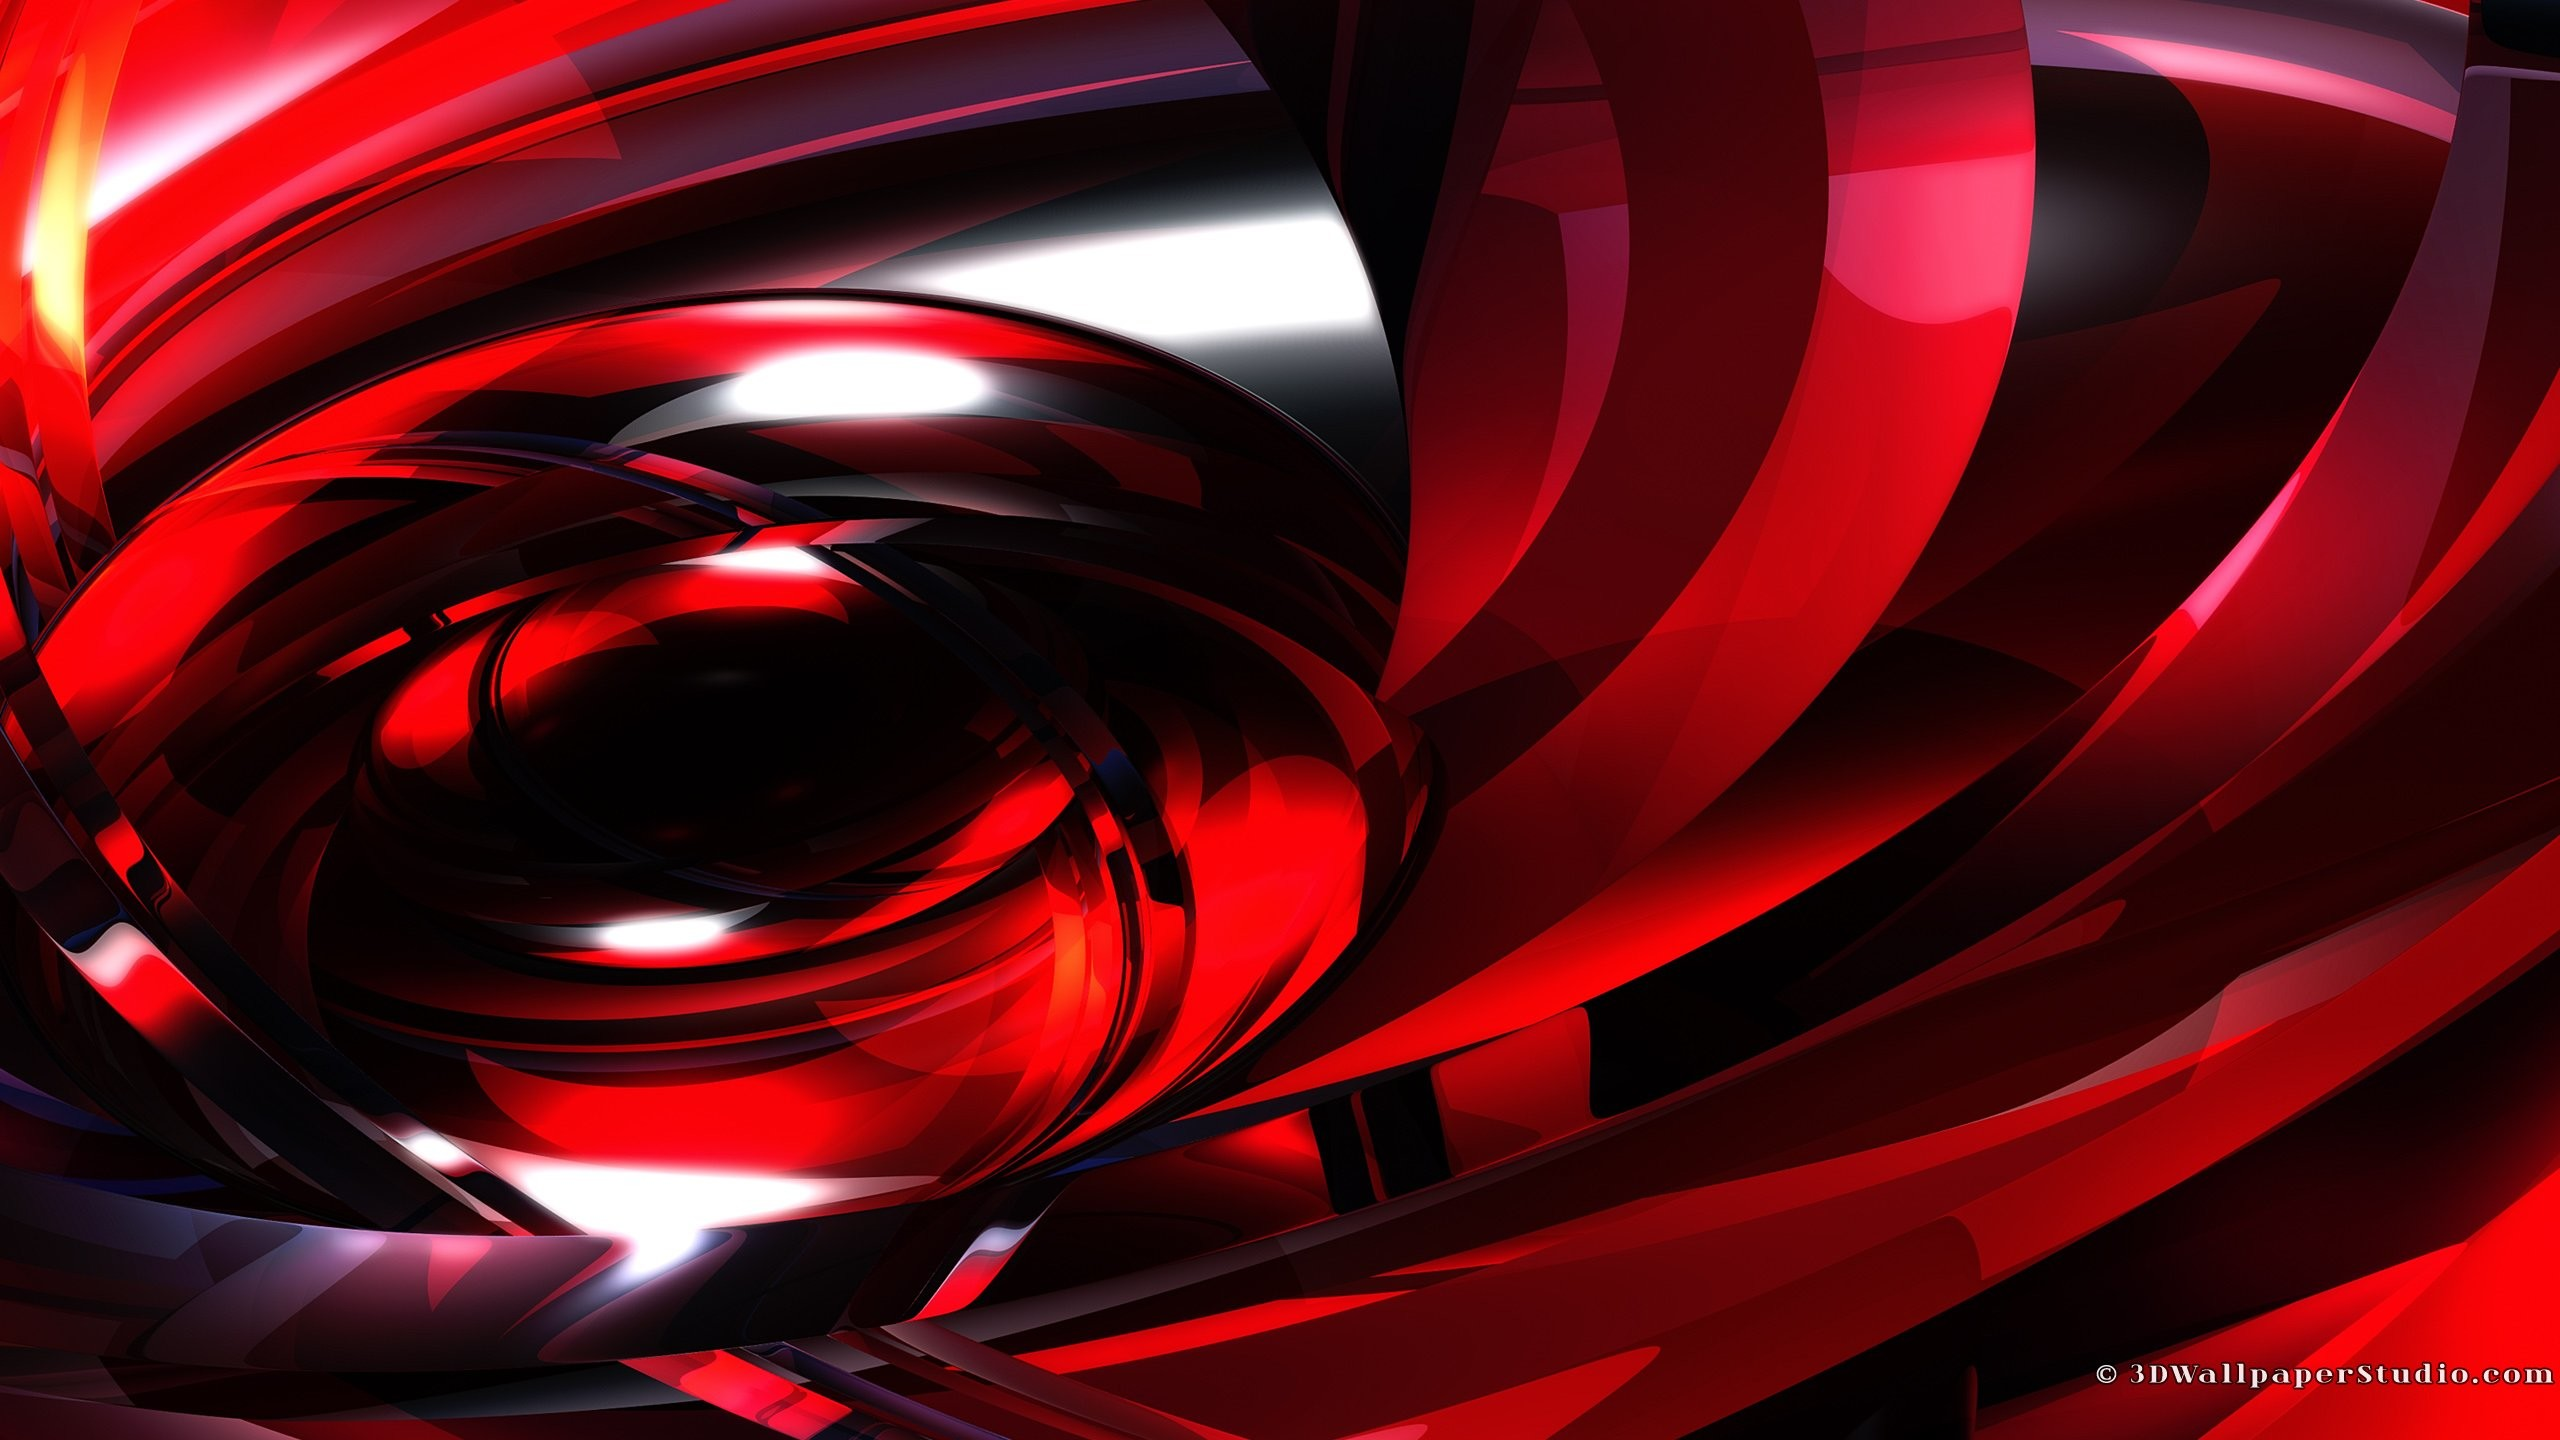 Glowing red abstract wallpaper in screen resolution